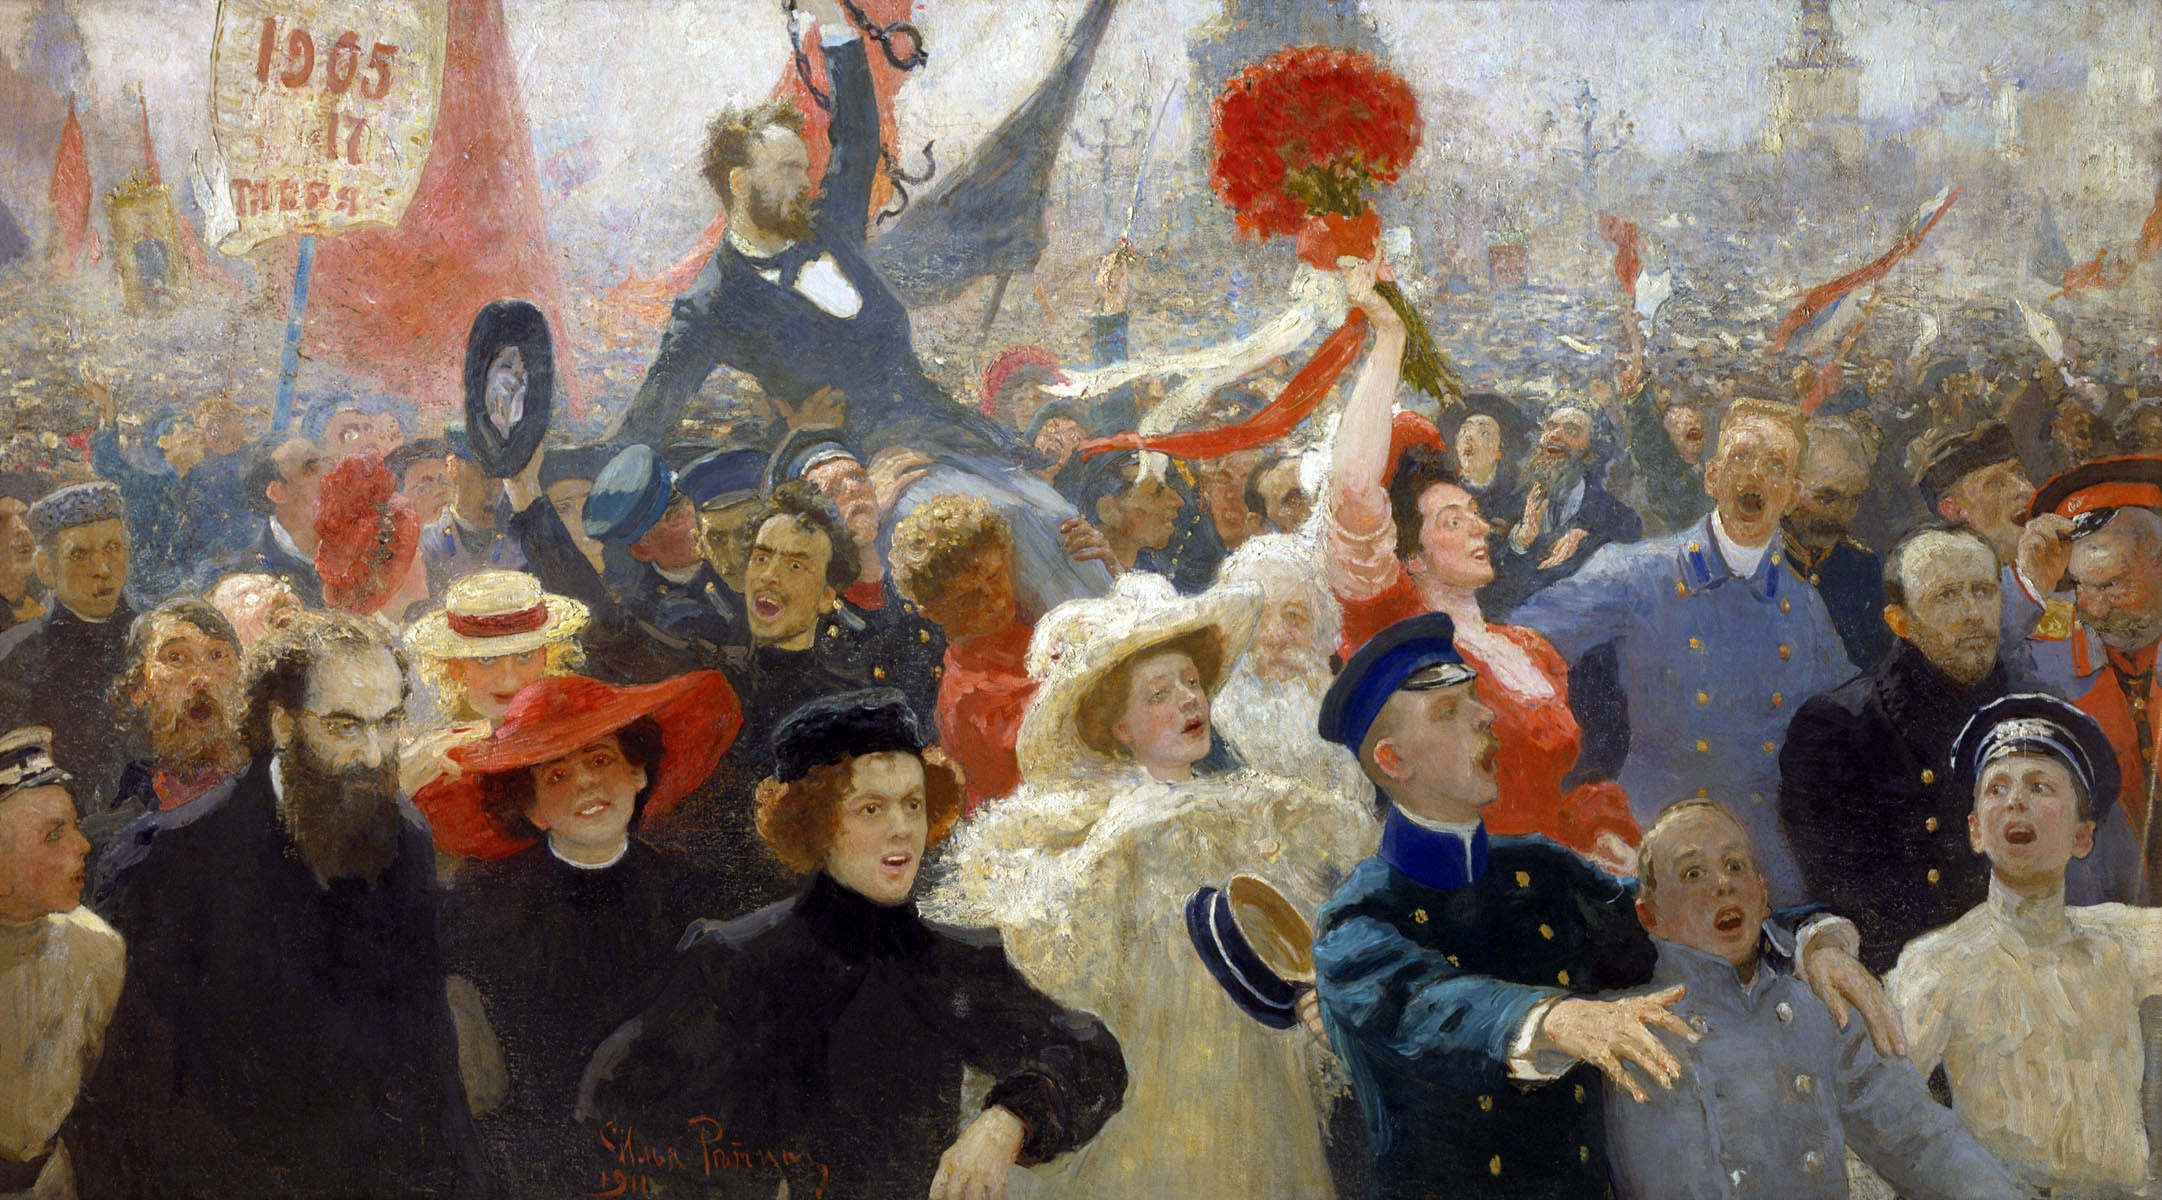 Ilya Repin: Demonstration 17 October 1905